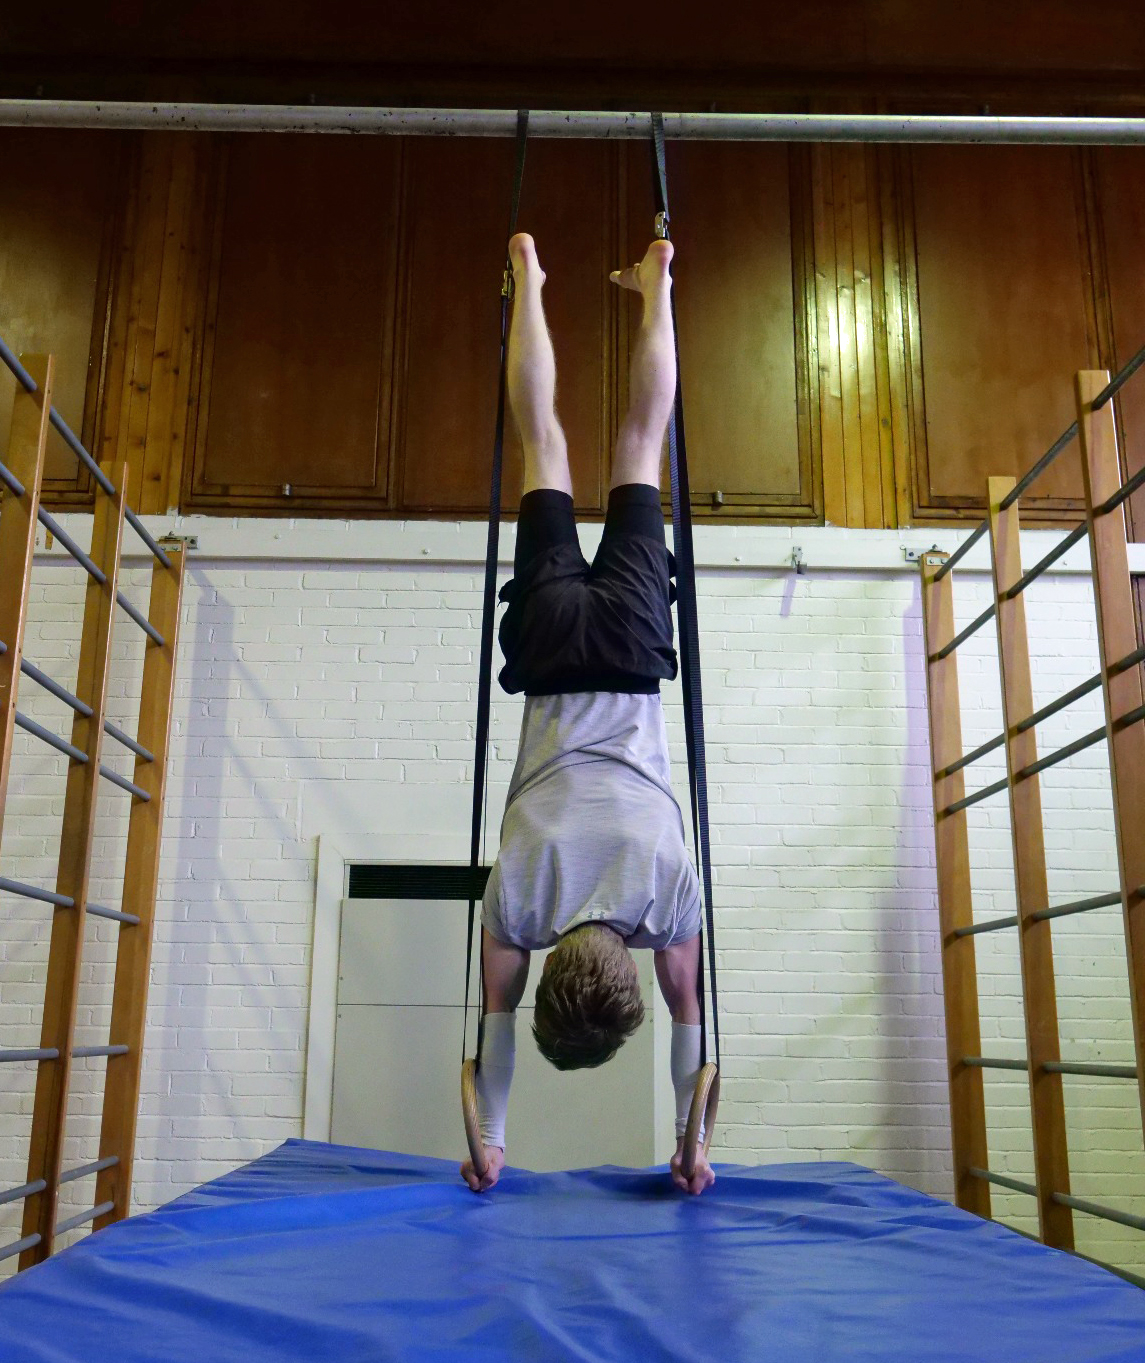 Gymnast performing a handstand on rings